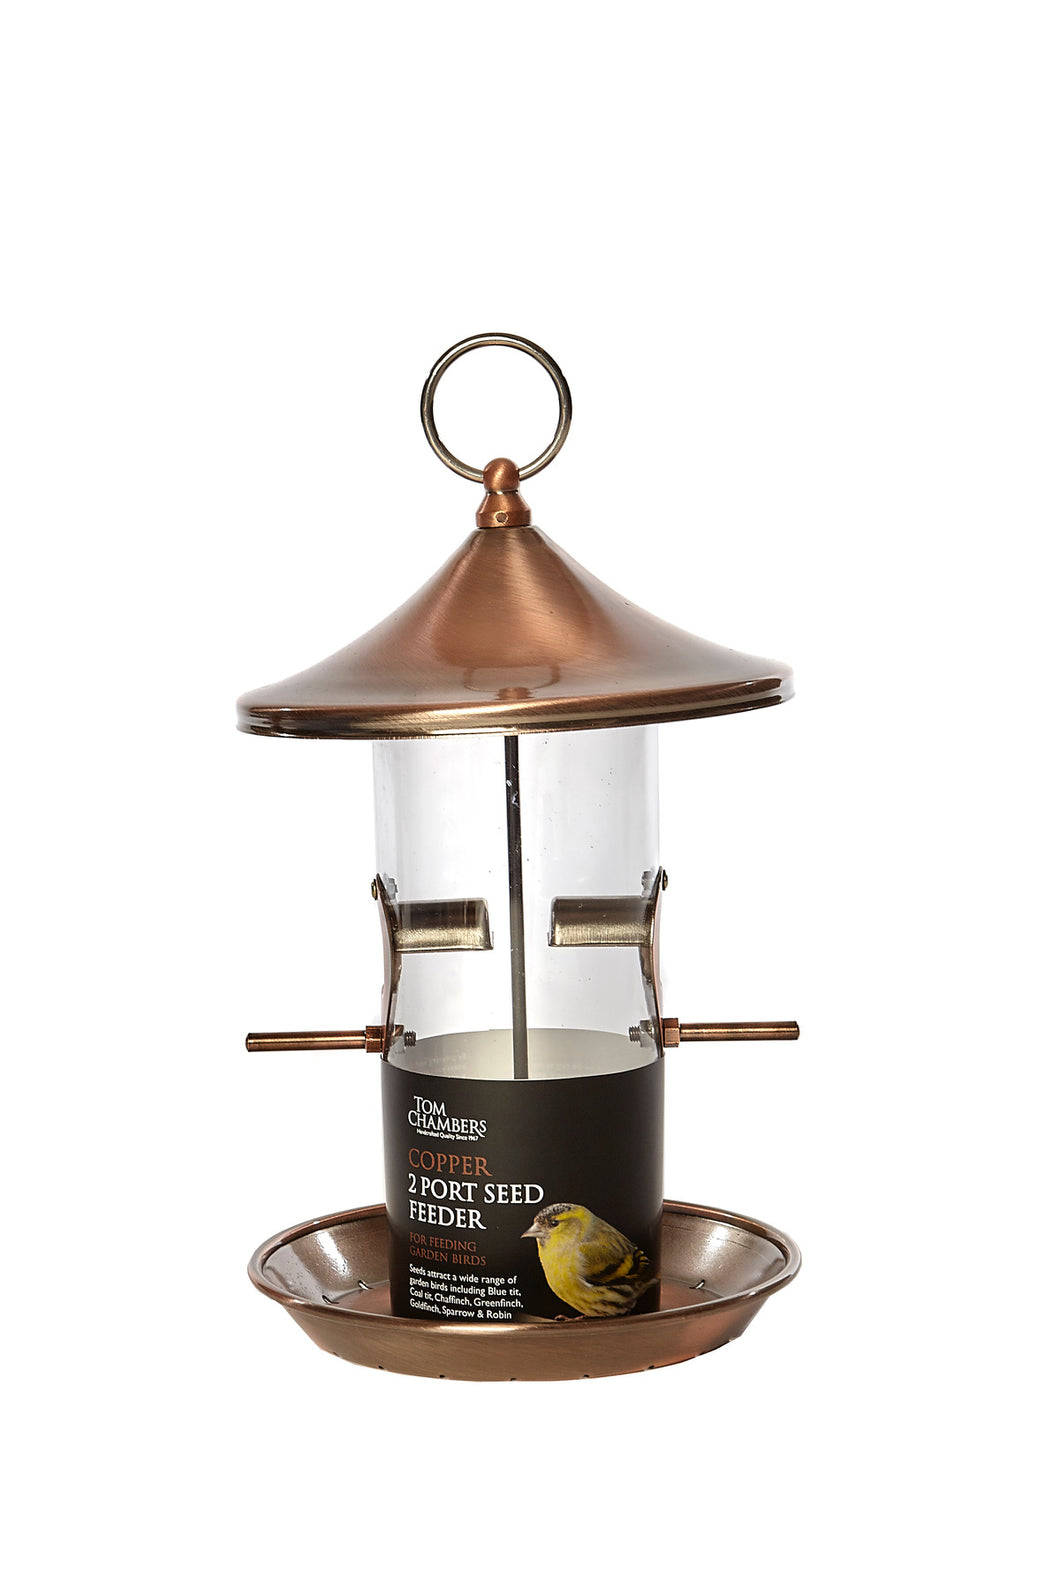 Copper 2 Port Seed Feeder